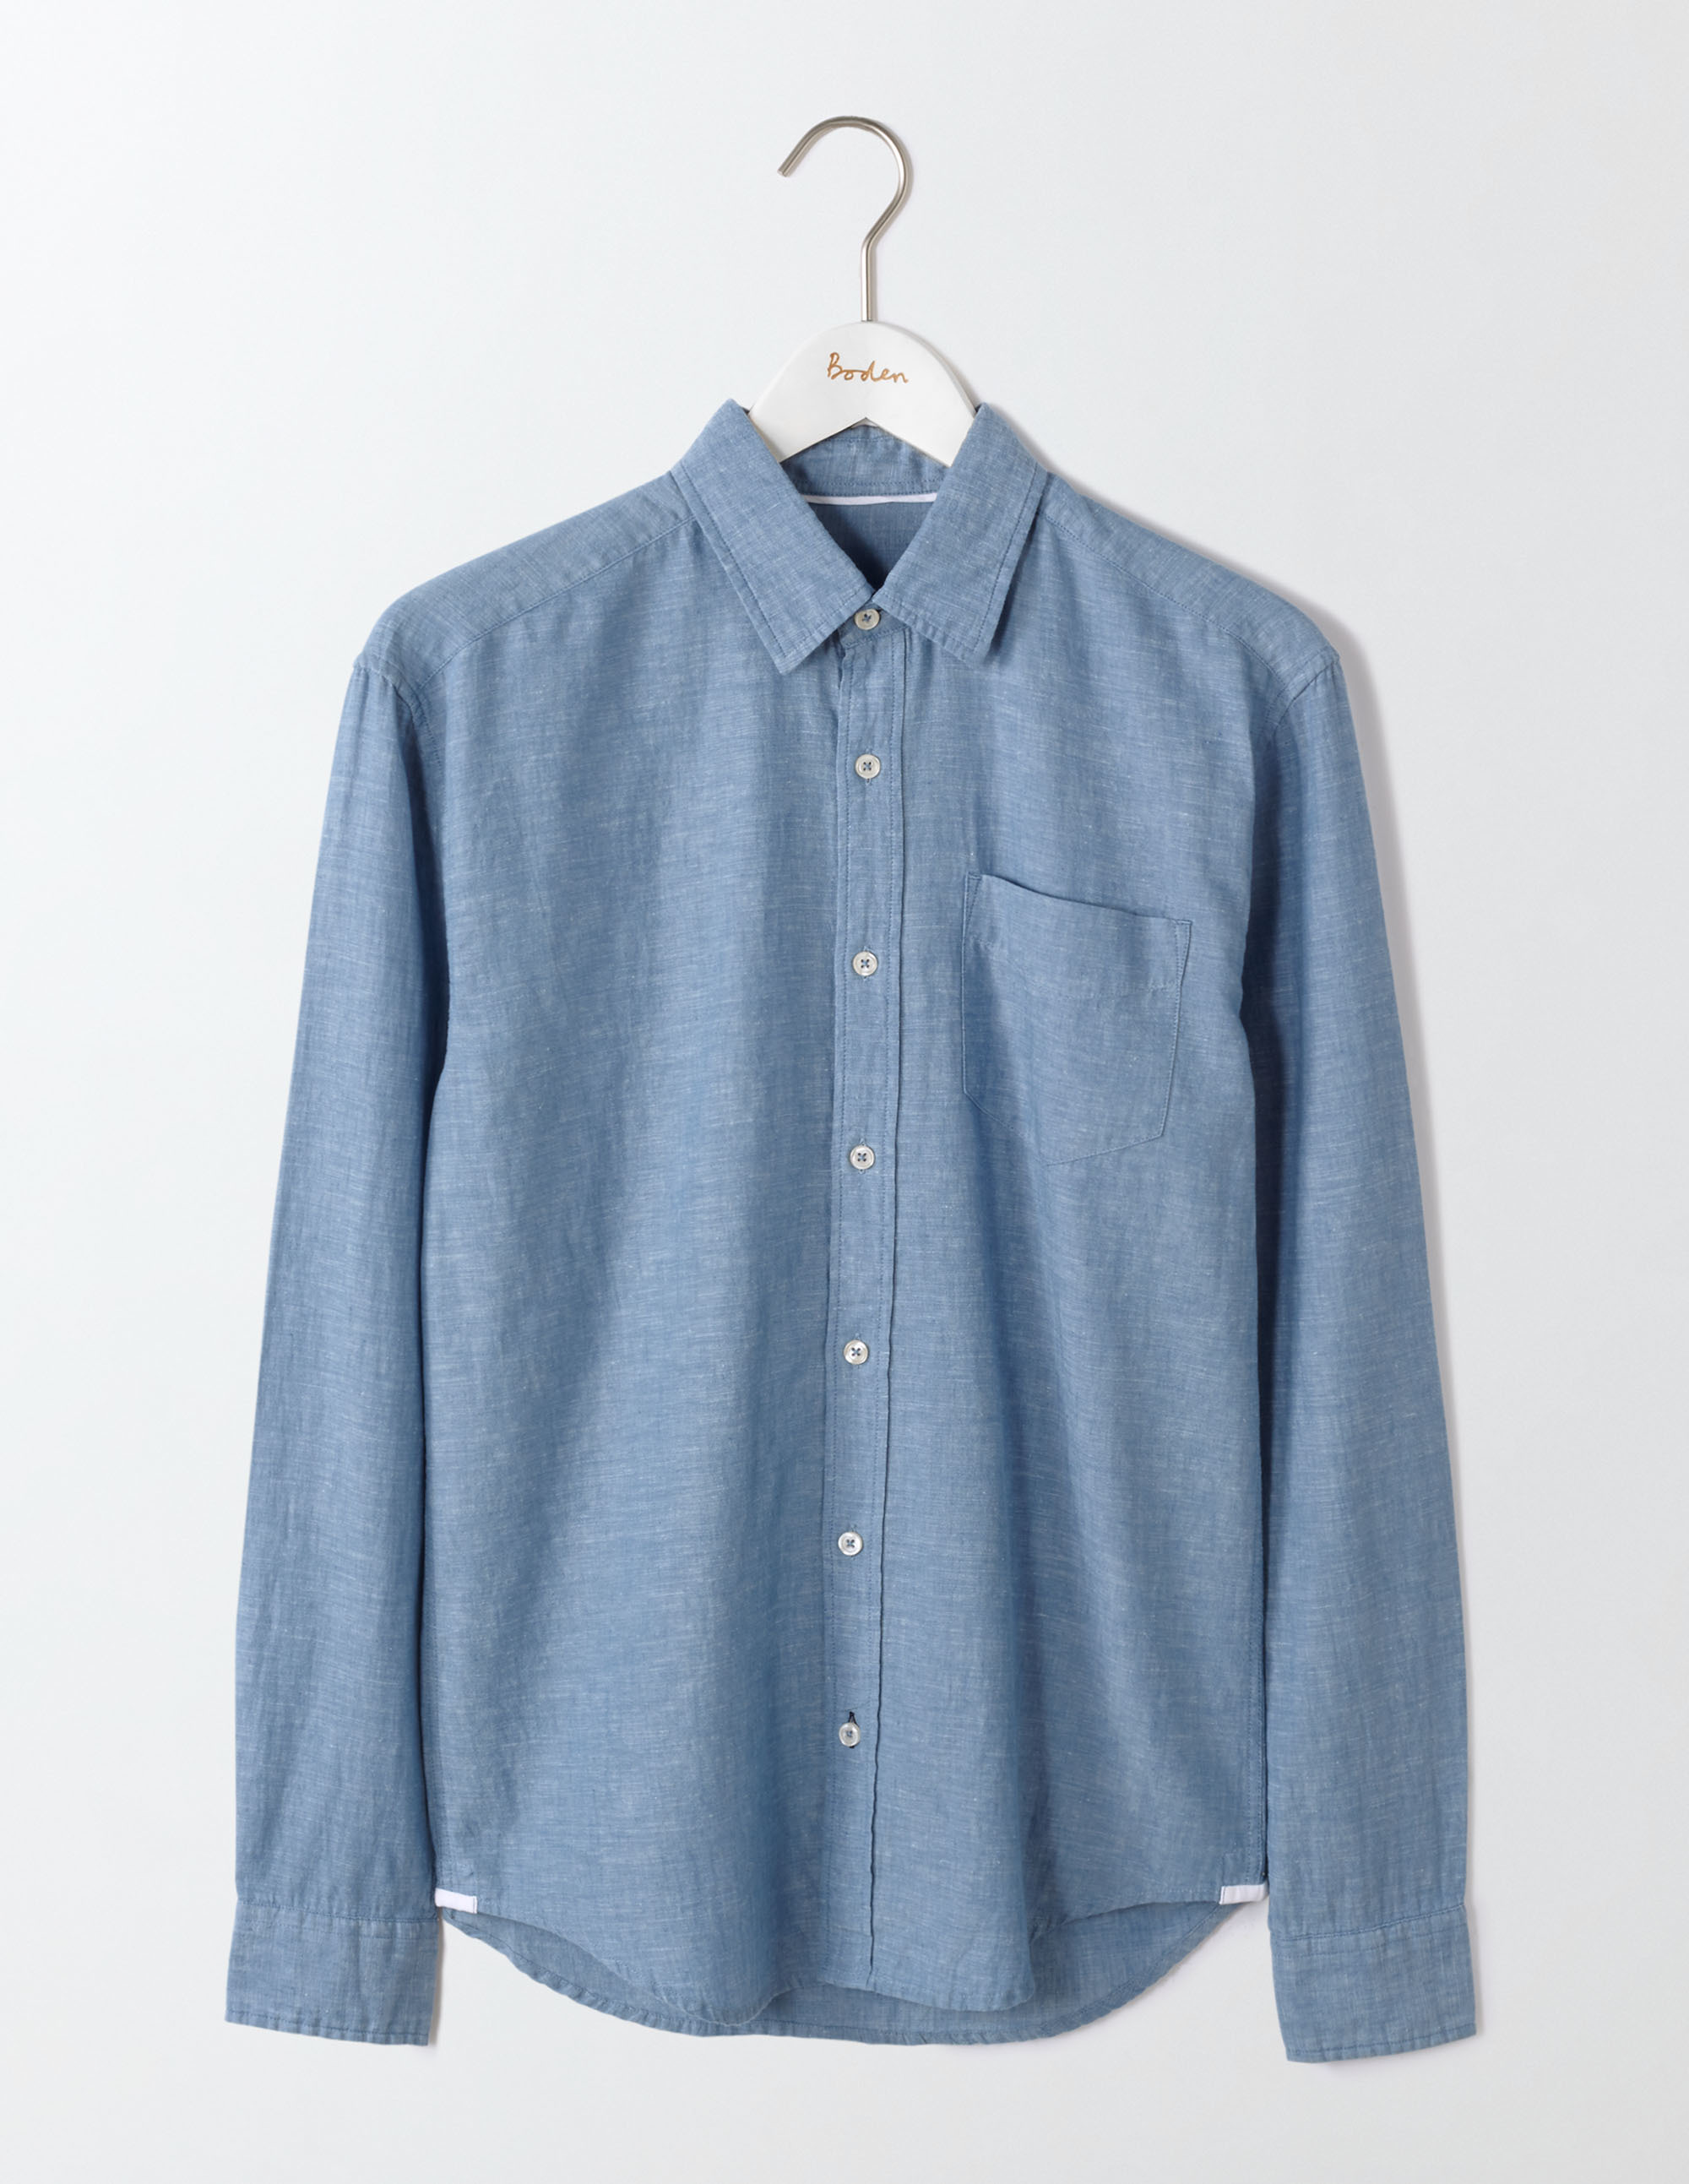 Boden Washed Navy Linen Cotton Shirt